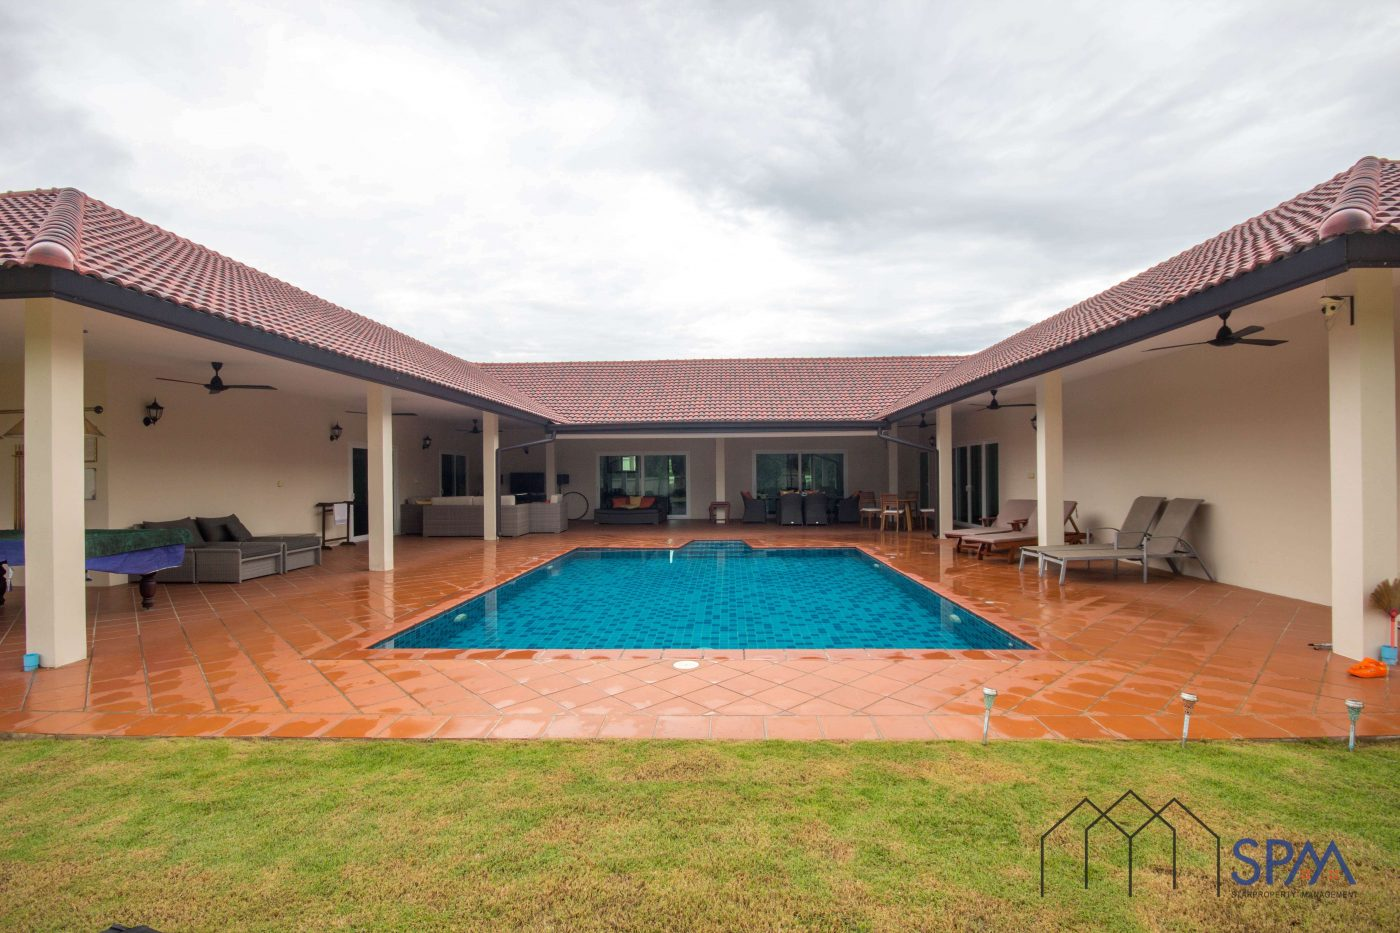 Exclusive Pool Villa For Sale Hua Hin Soi 70 at Hua Hin District, Prachuap Khiri Khan, Thailand